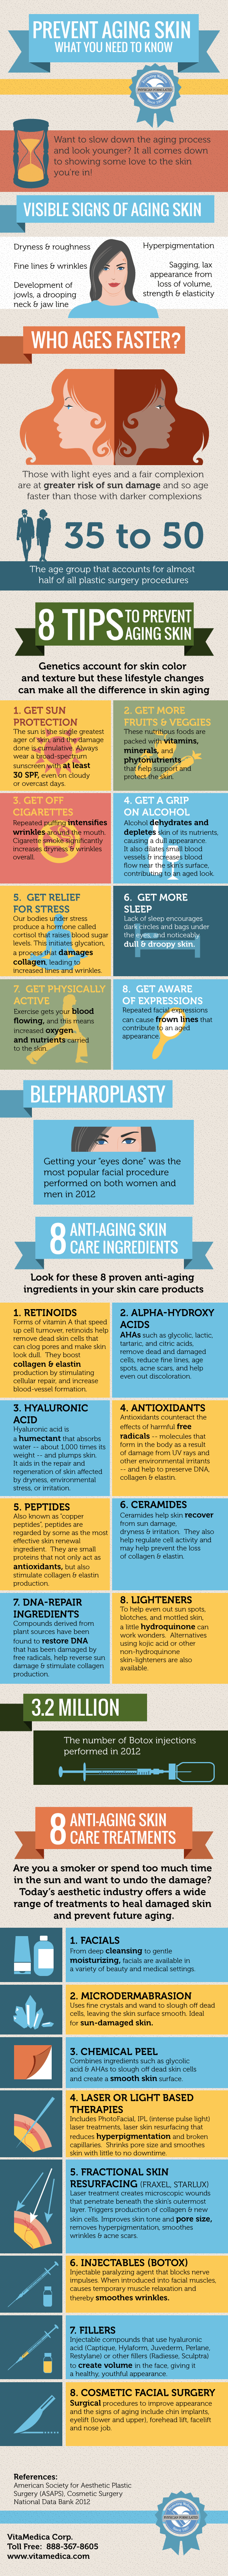 Prevent Aging Skin: What You Need To Know